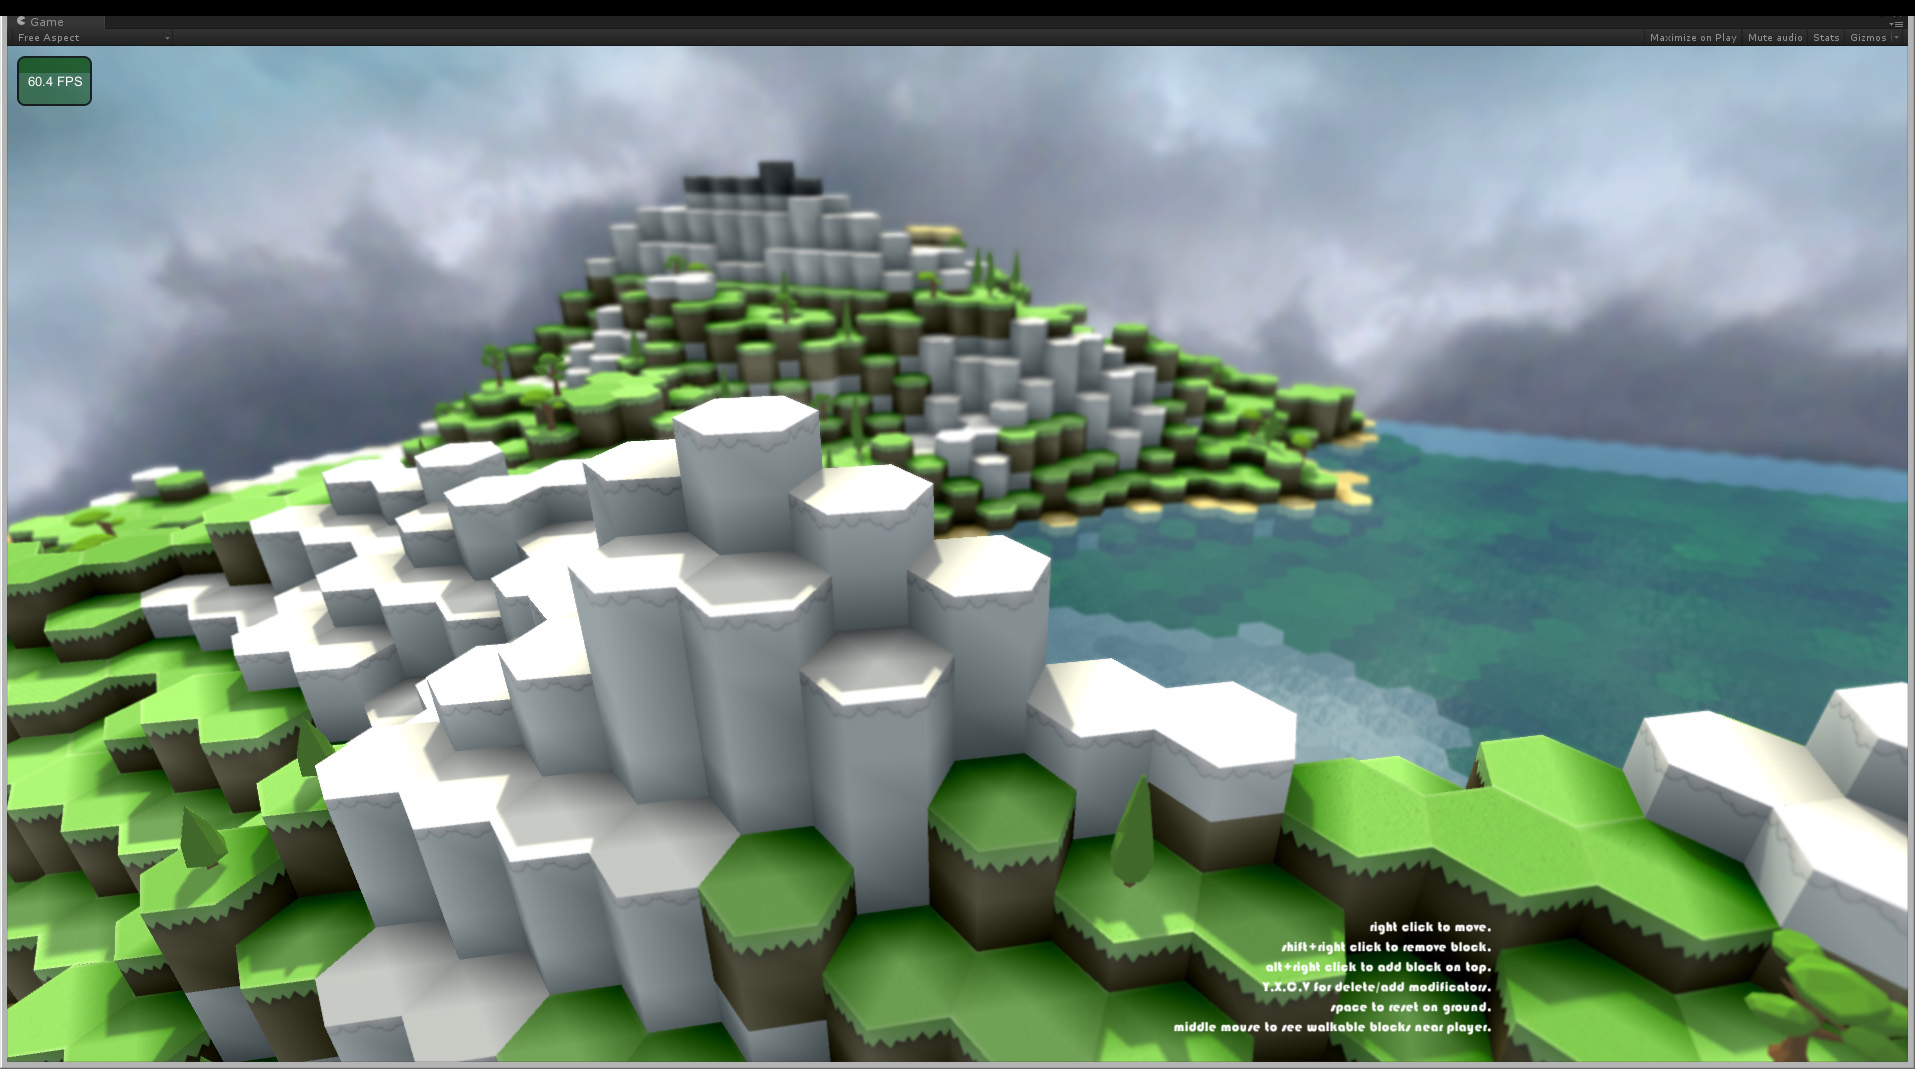 Procedural hex voxel world looking for gameplay unity community hexvox201g hexvox202g hexvox203g sciox Images